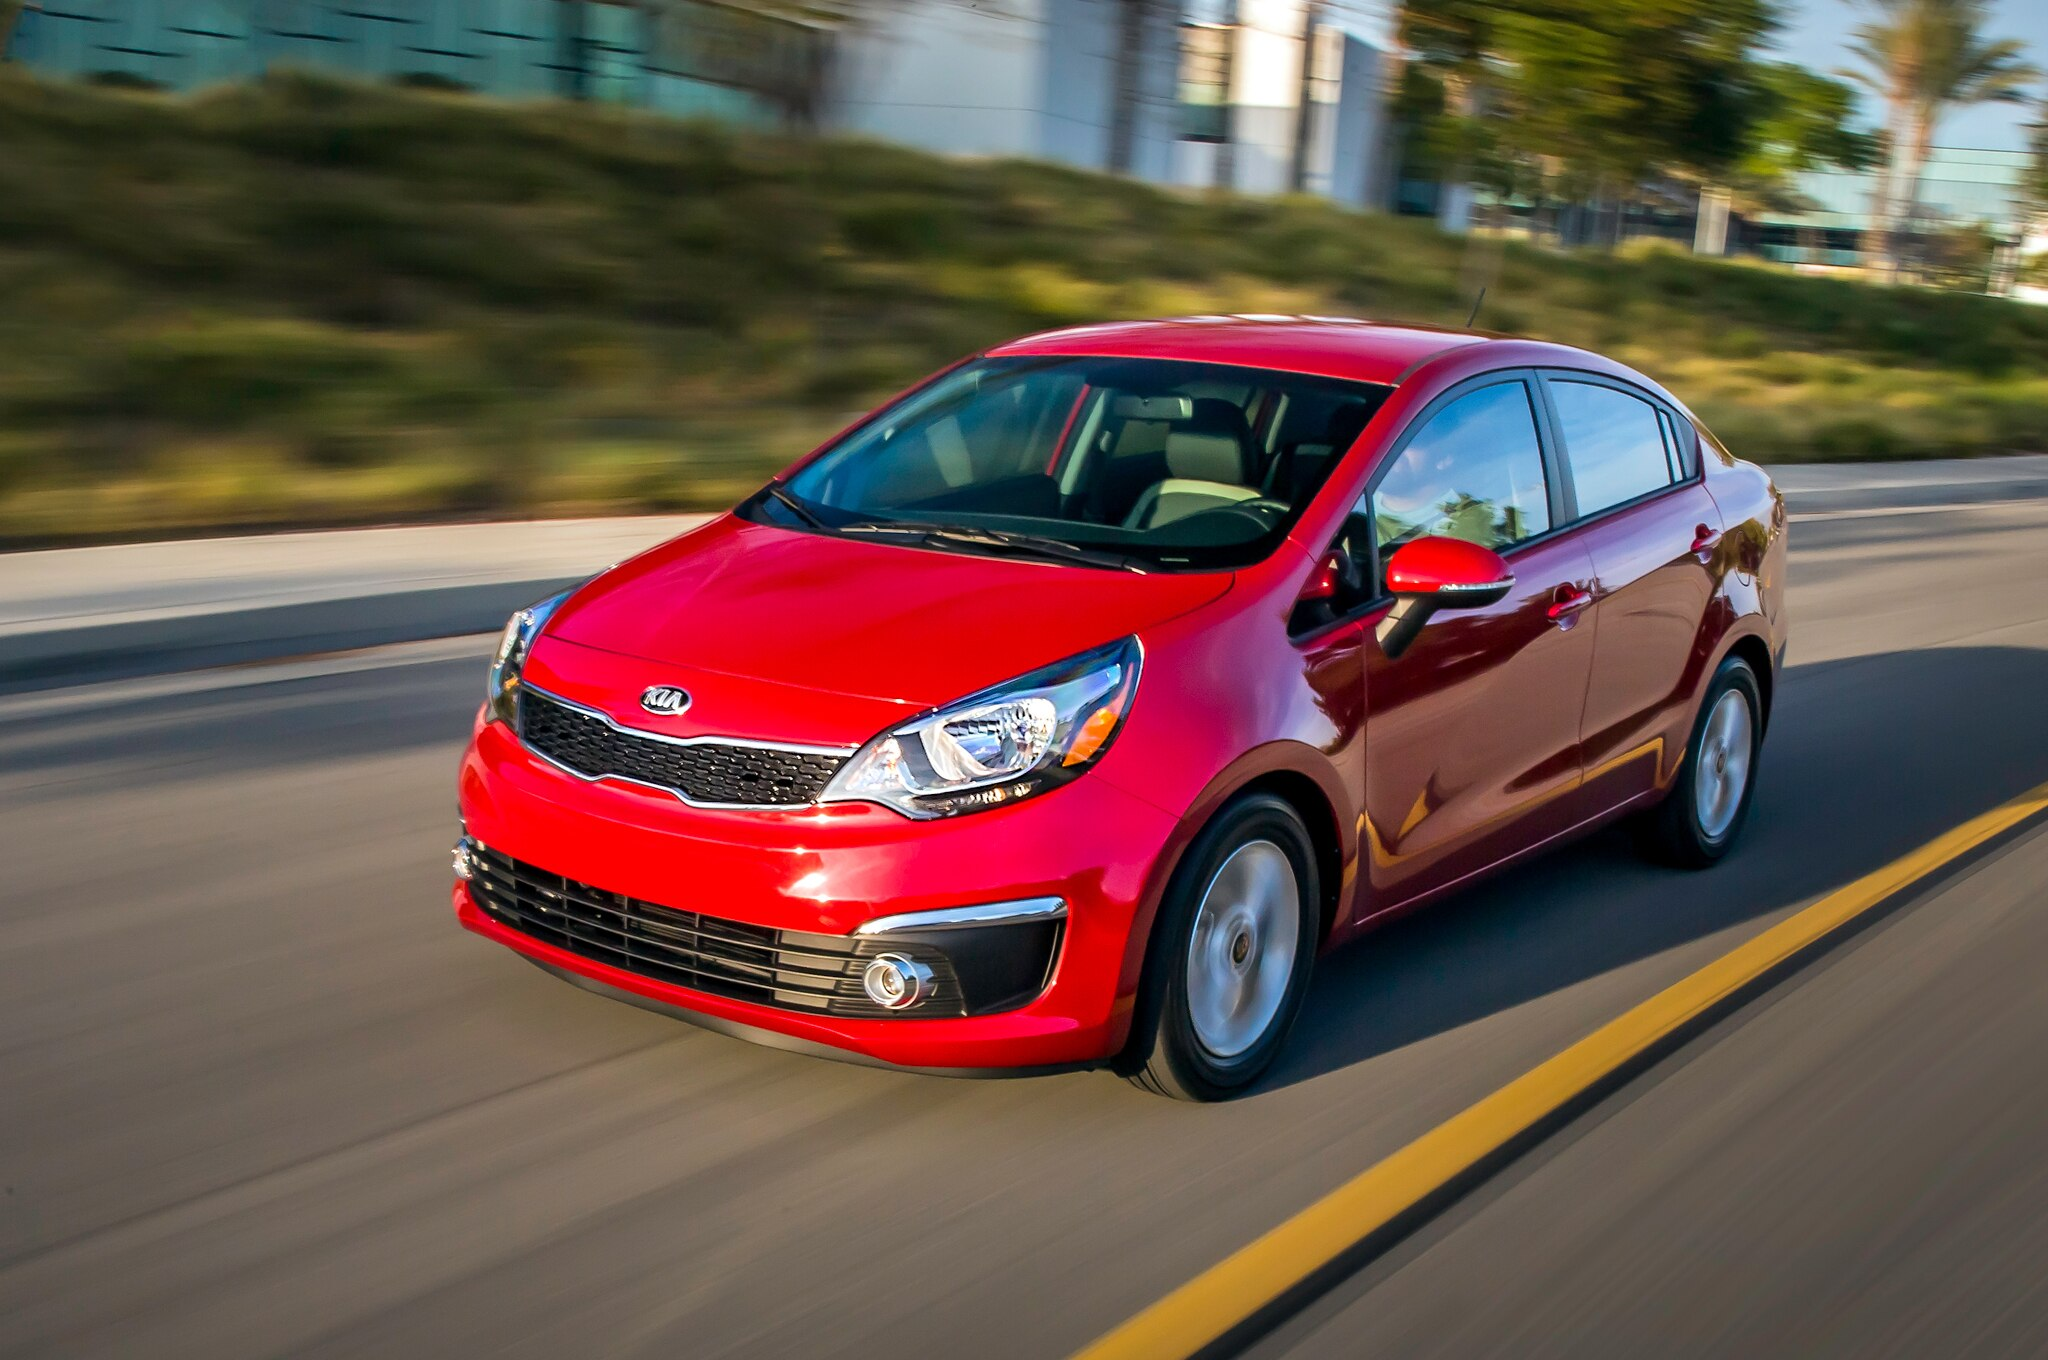 2016 kia rio sedan and hatchback refreshed for chicago show. Black Bedroom Furniture Sets. Home Design Ideas